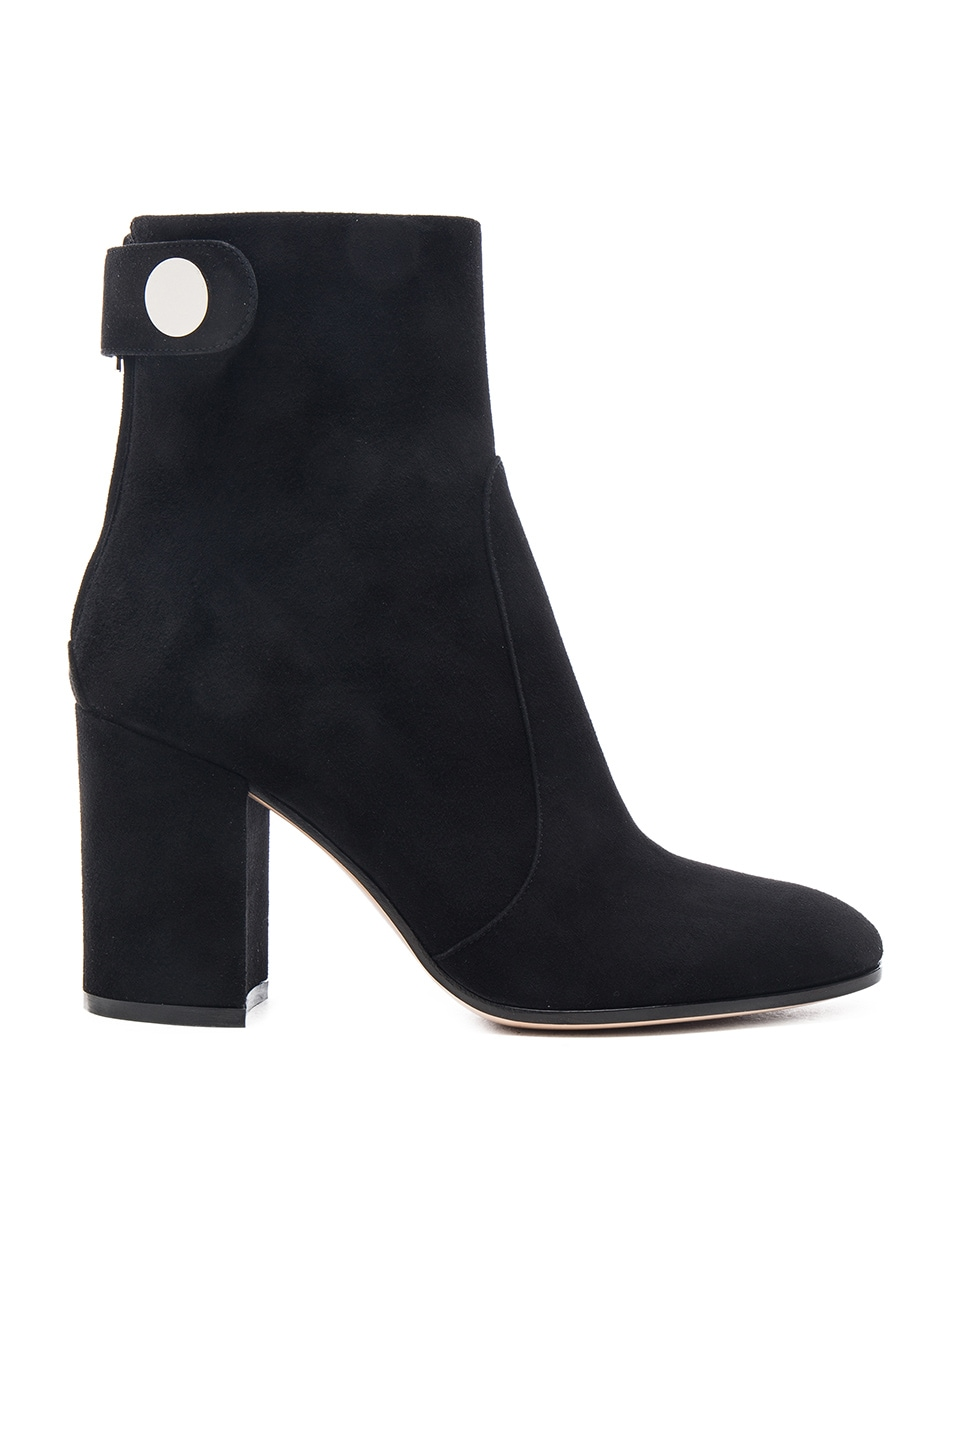 Image 1 of Gianvito Rossi Suede Chunky Heel Boots in Black